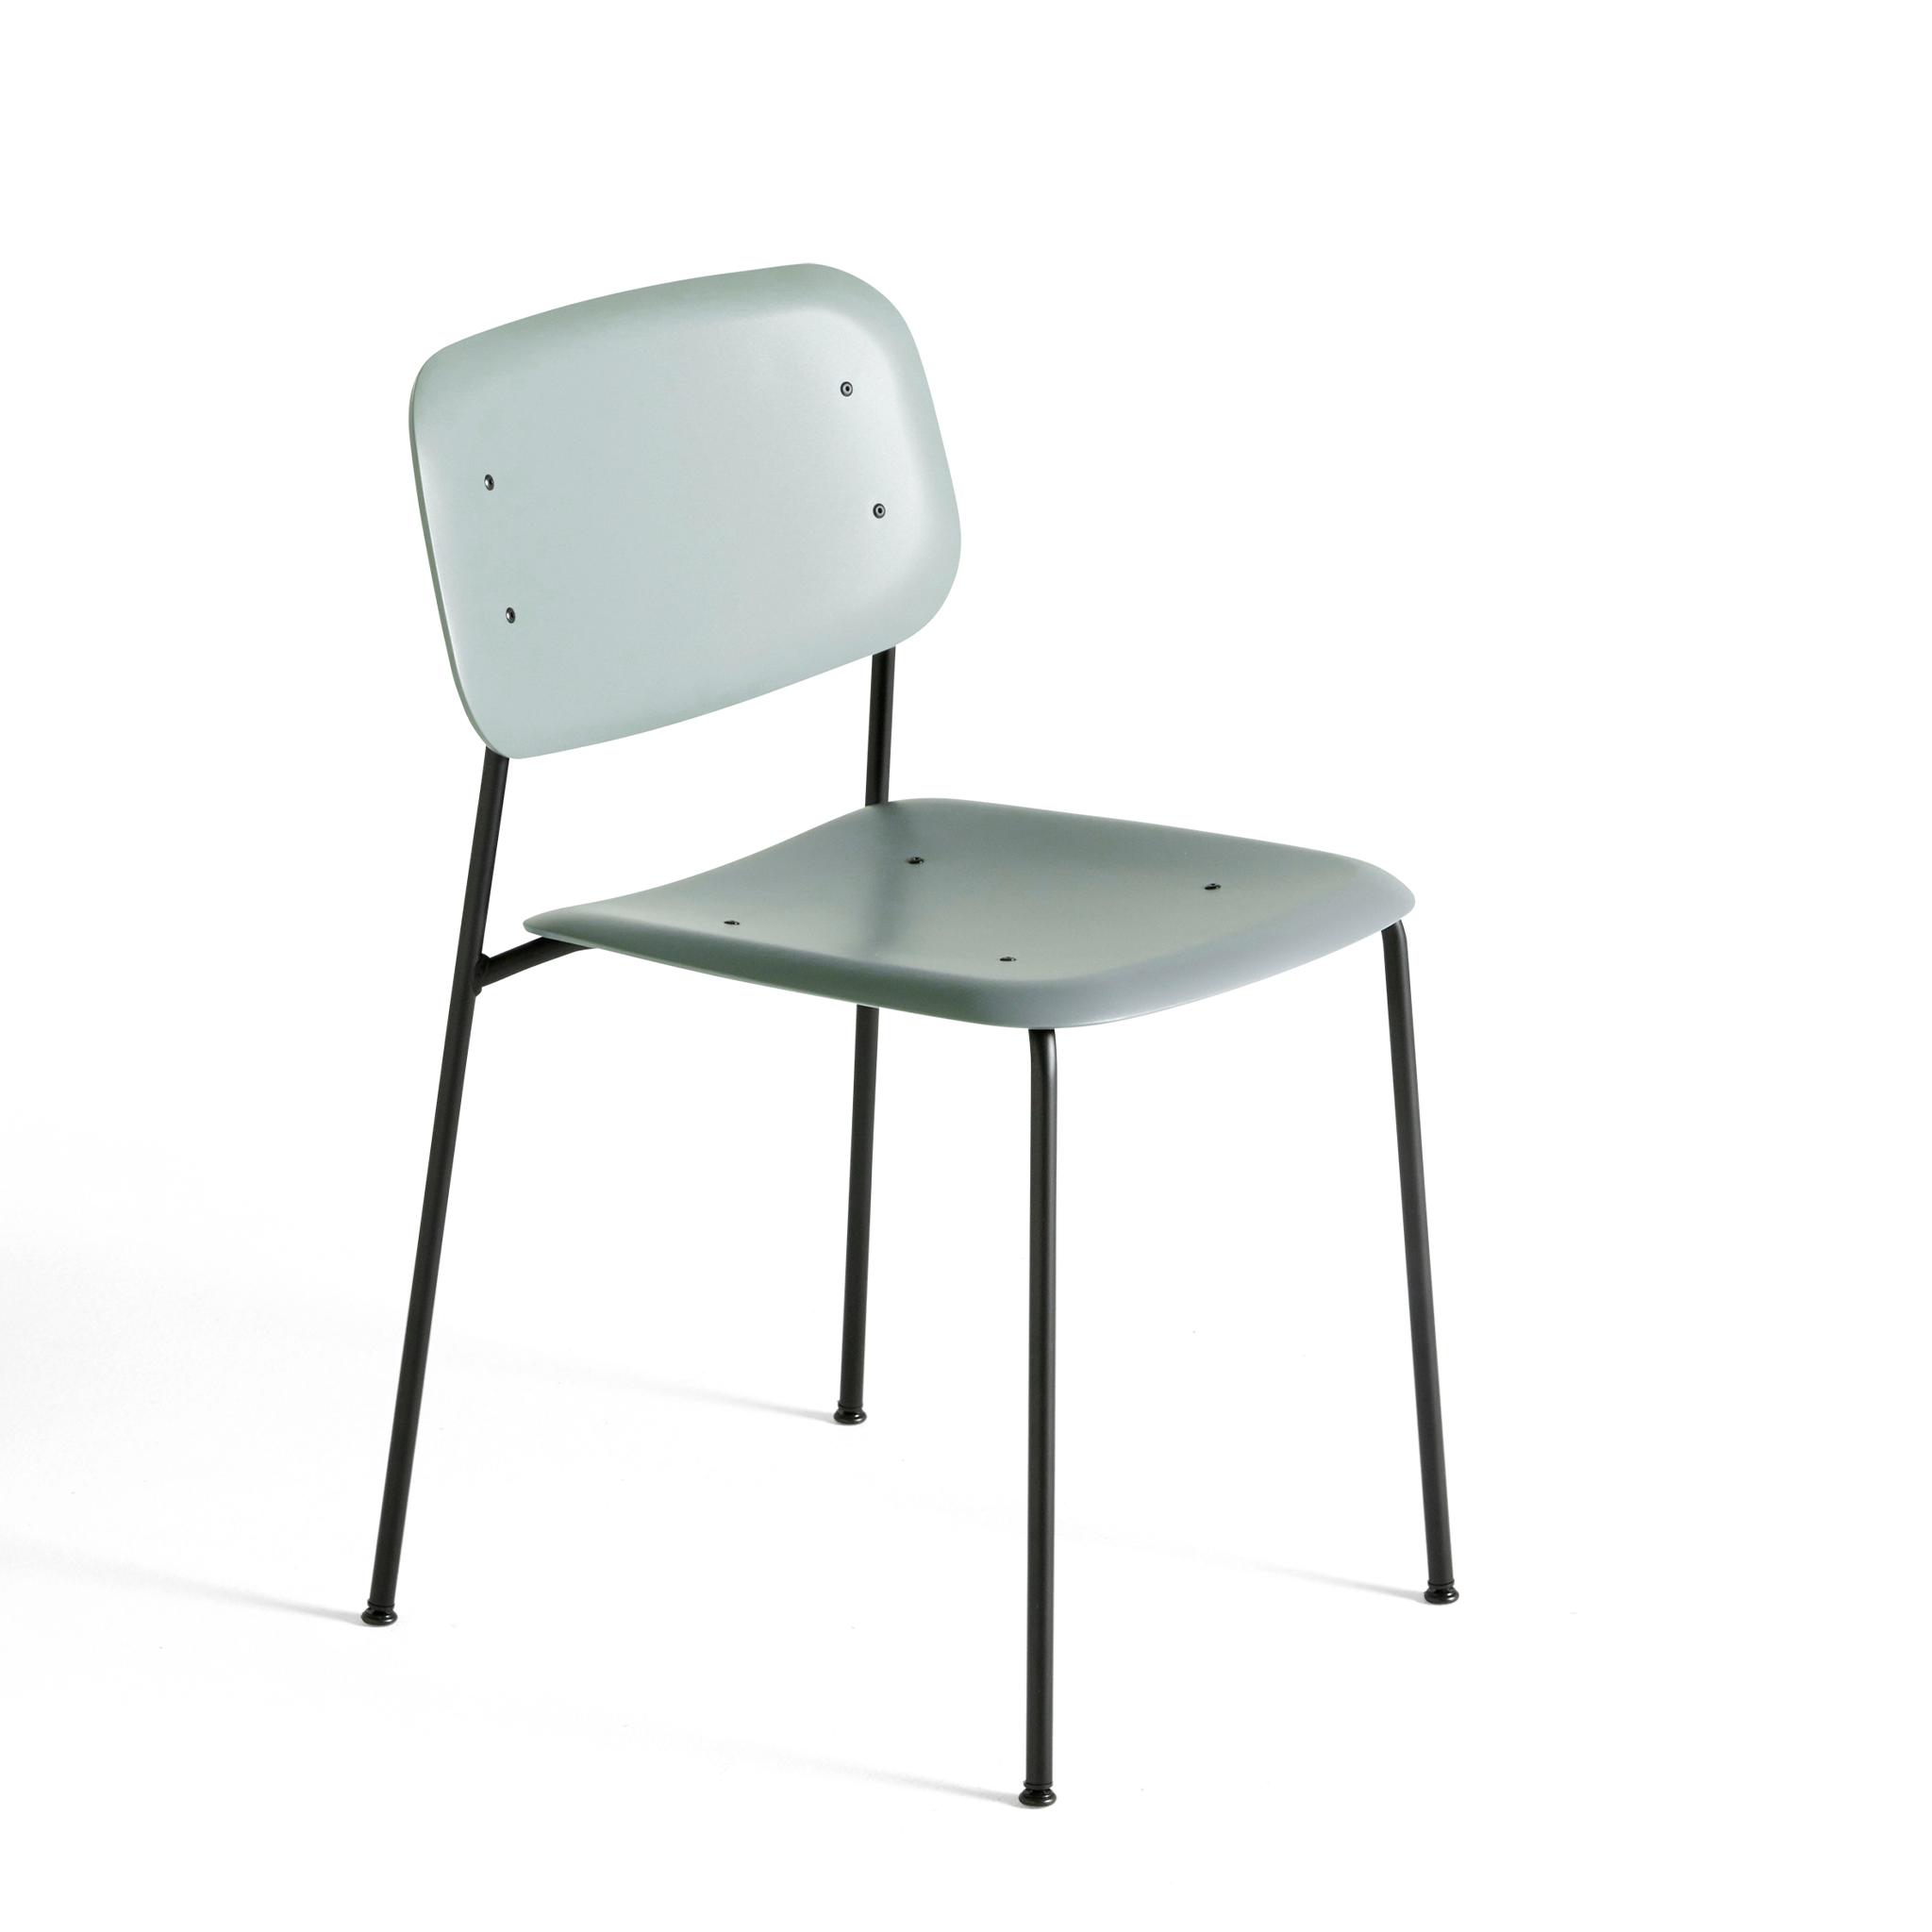 Soft Edge P10 Chair by Hay